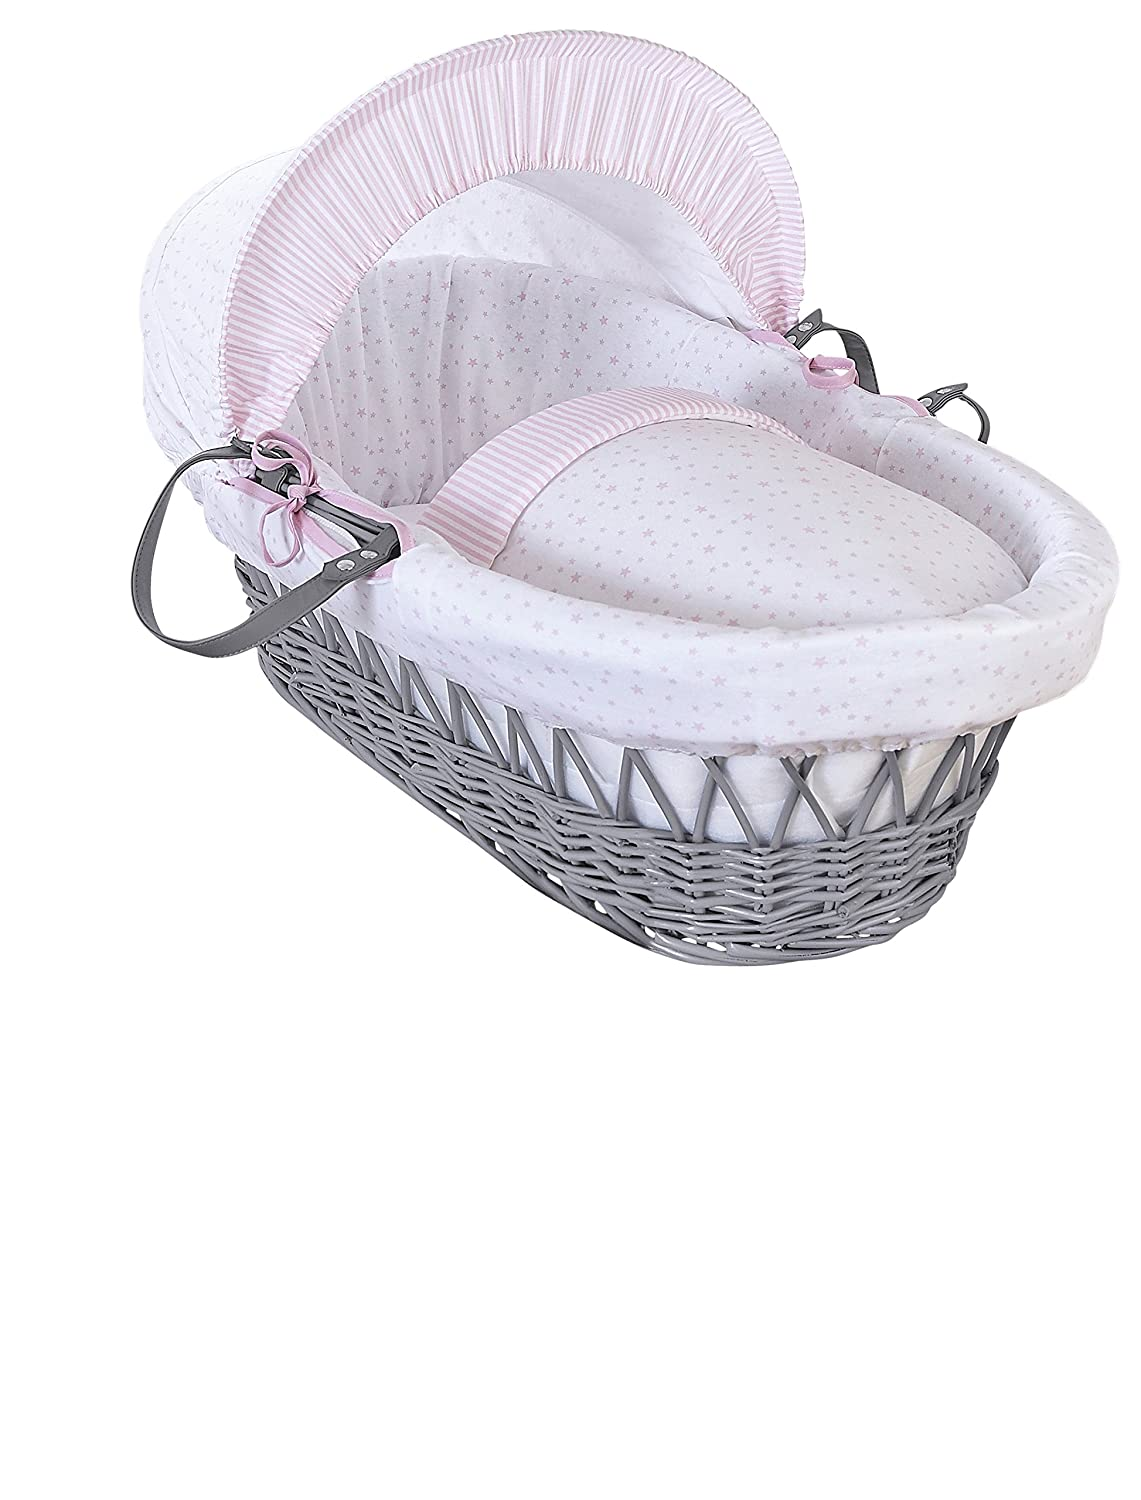 Clair de Lune Stars and Stripes Grey Wicker Moses Basket inc. bedding, mattress & adjustable hood (Grey) CL5811GGY